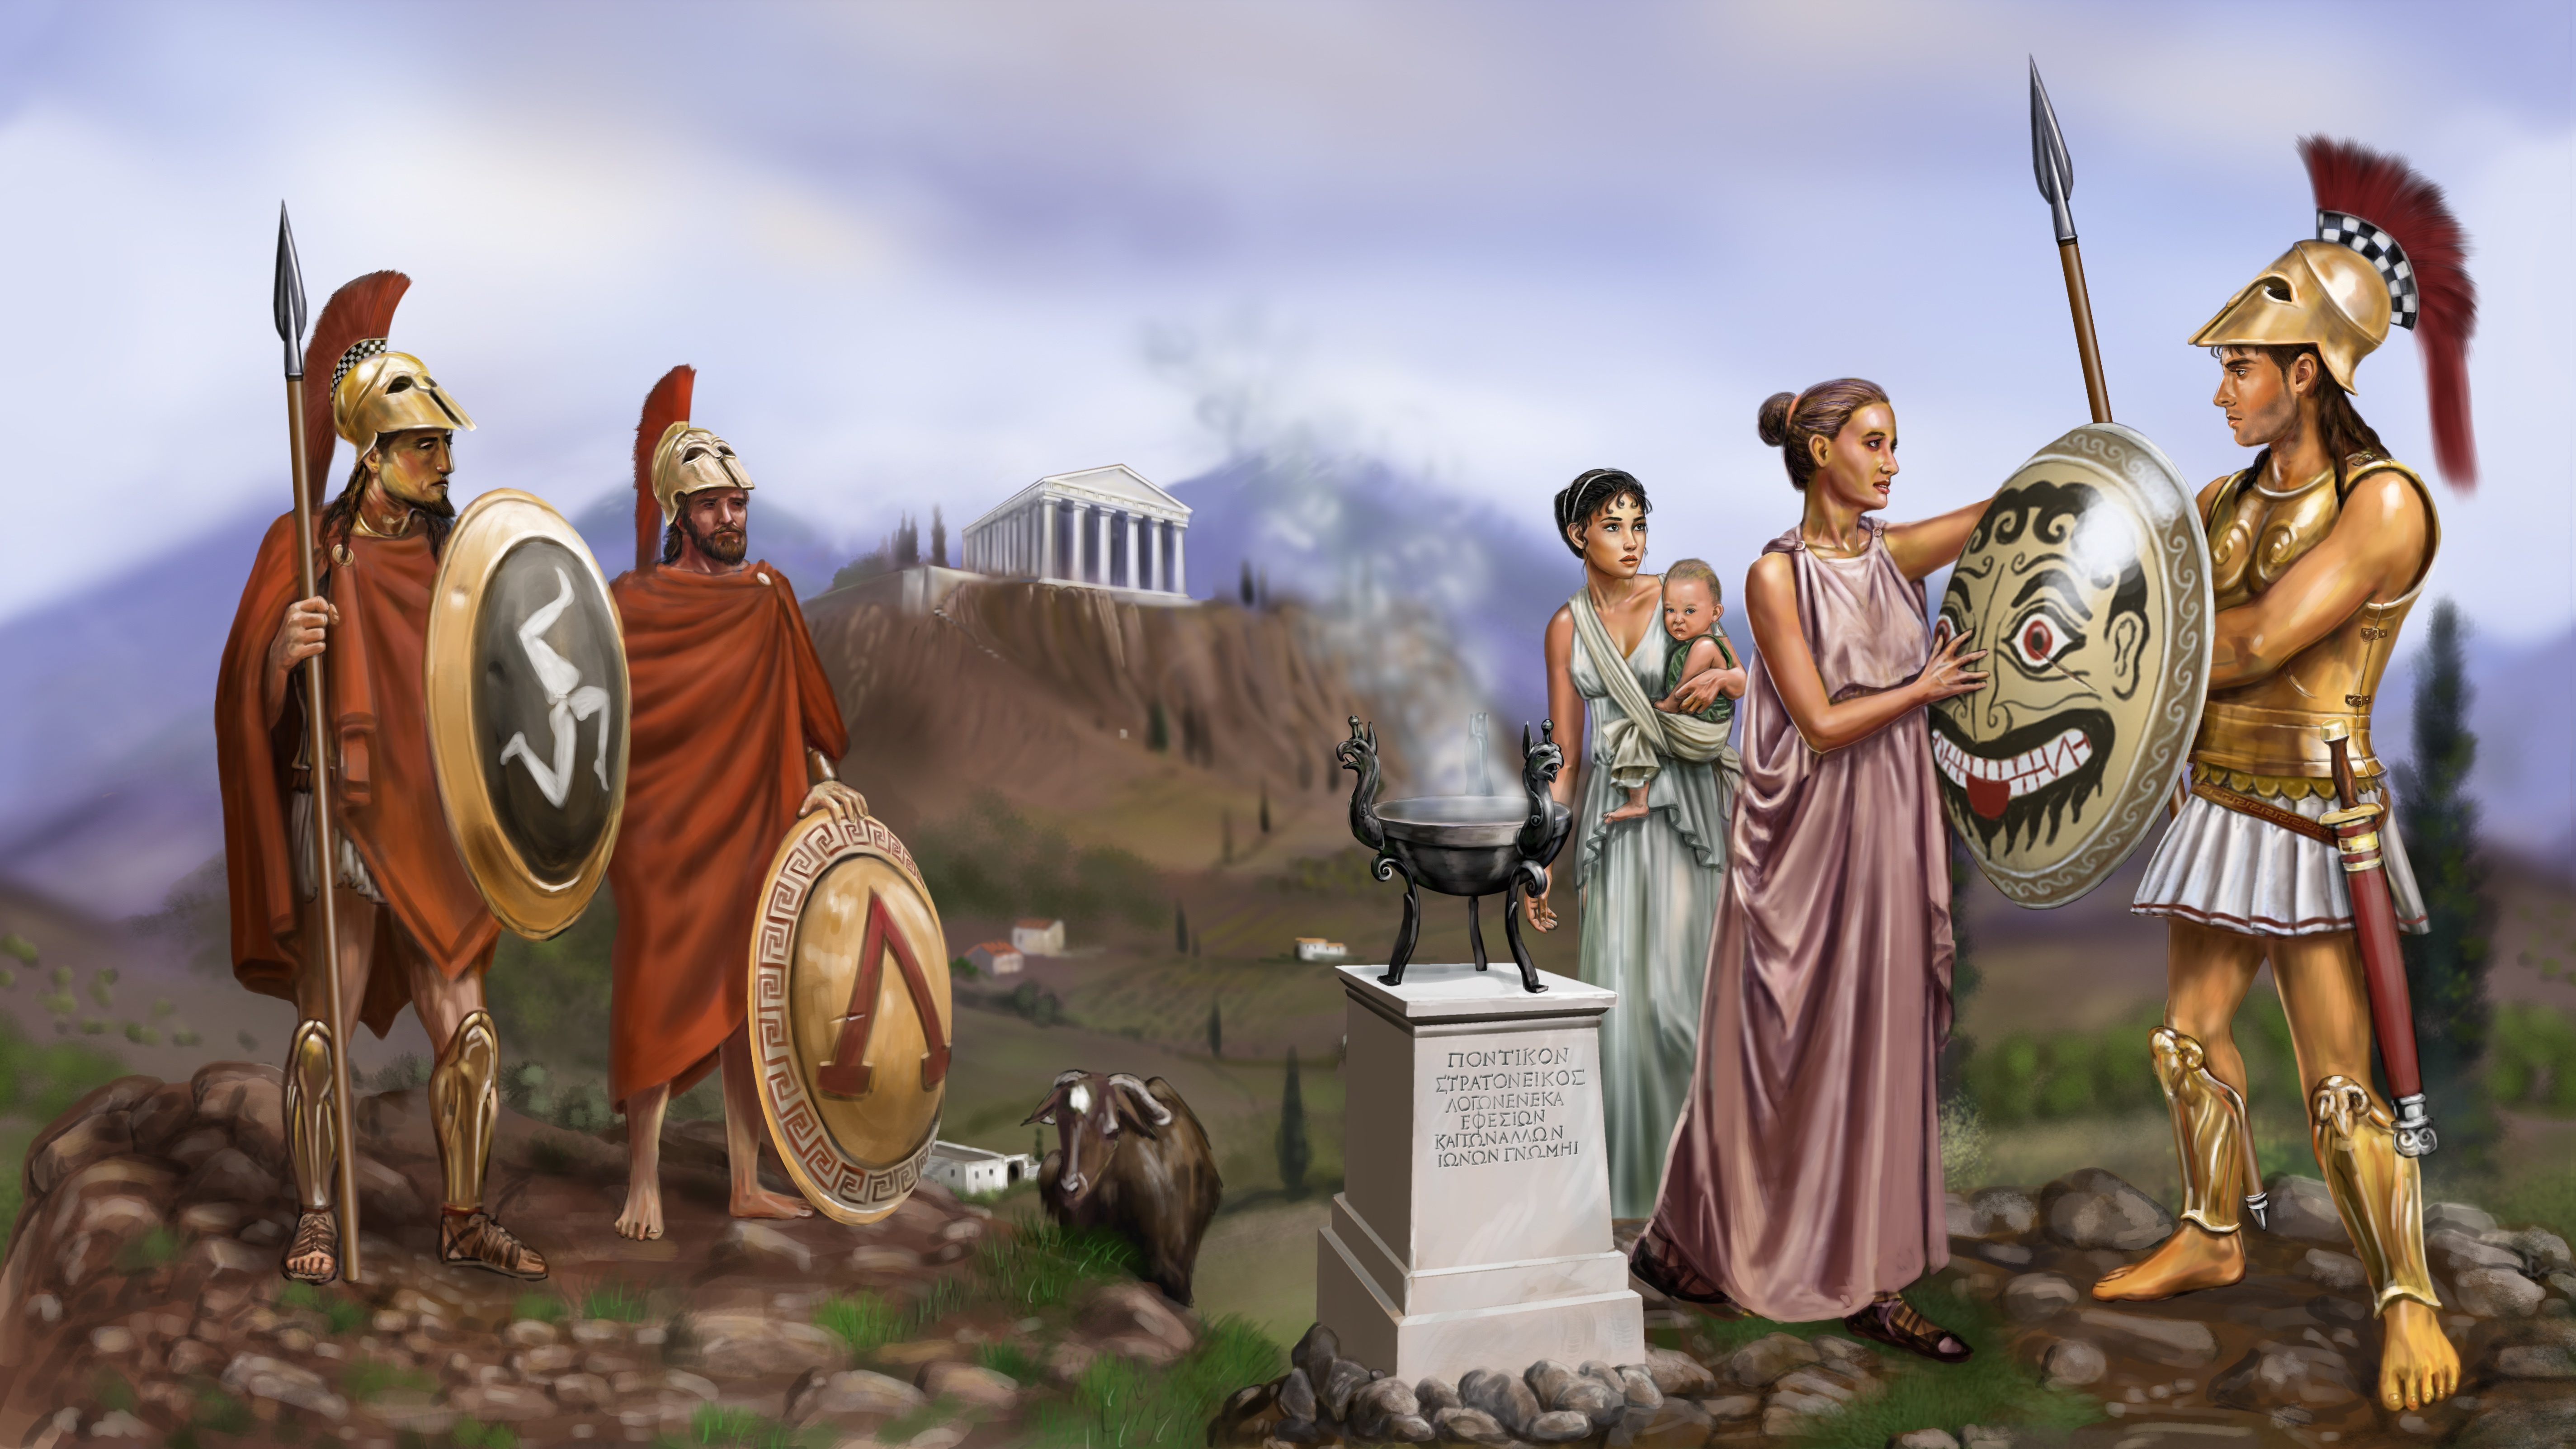 ancient spartan technology Exhibitions' categories discover that the technology of the ancient greeks, just before the end of the ancient world, was shockingly similar to the beginning of our modern technology.